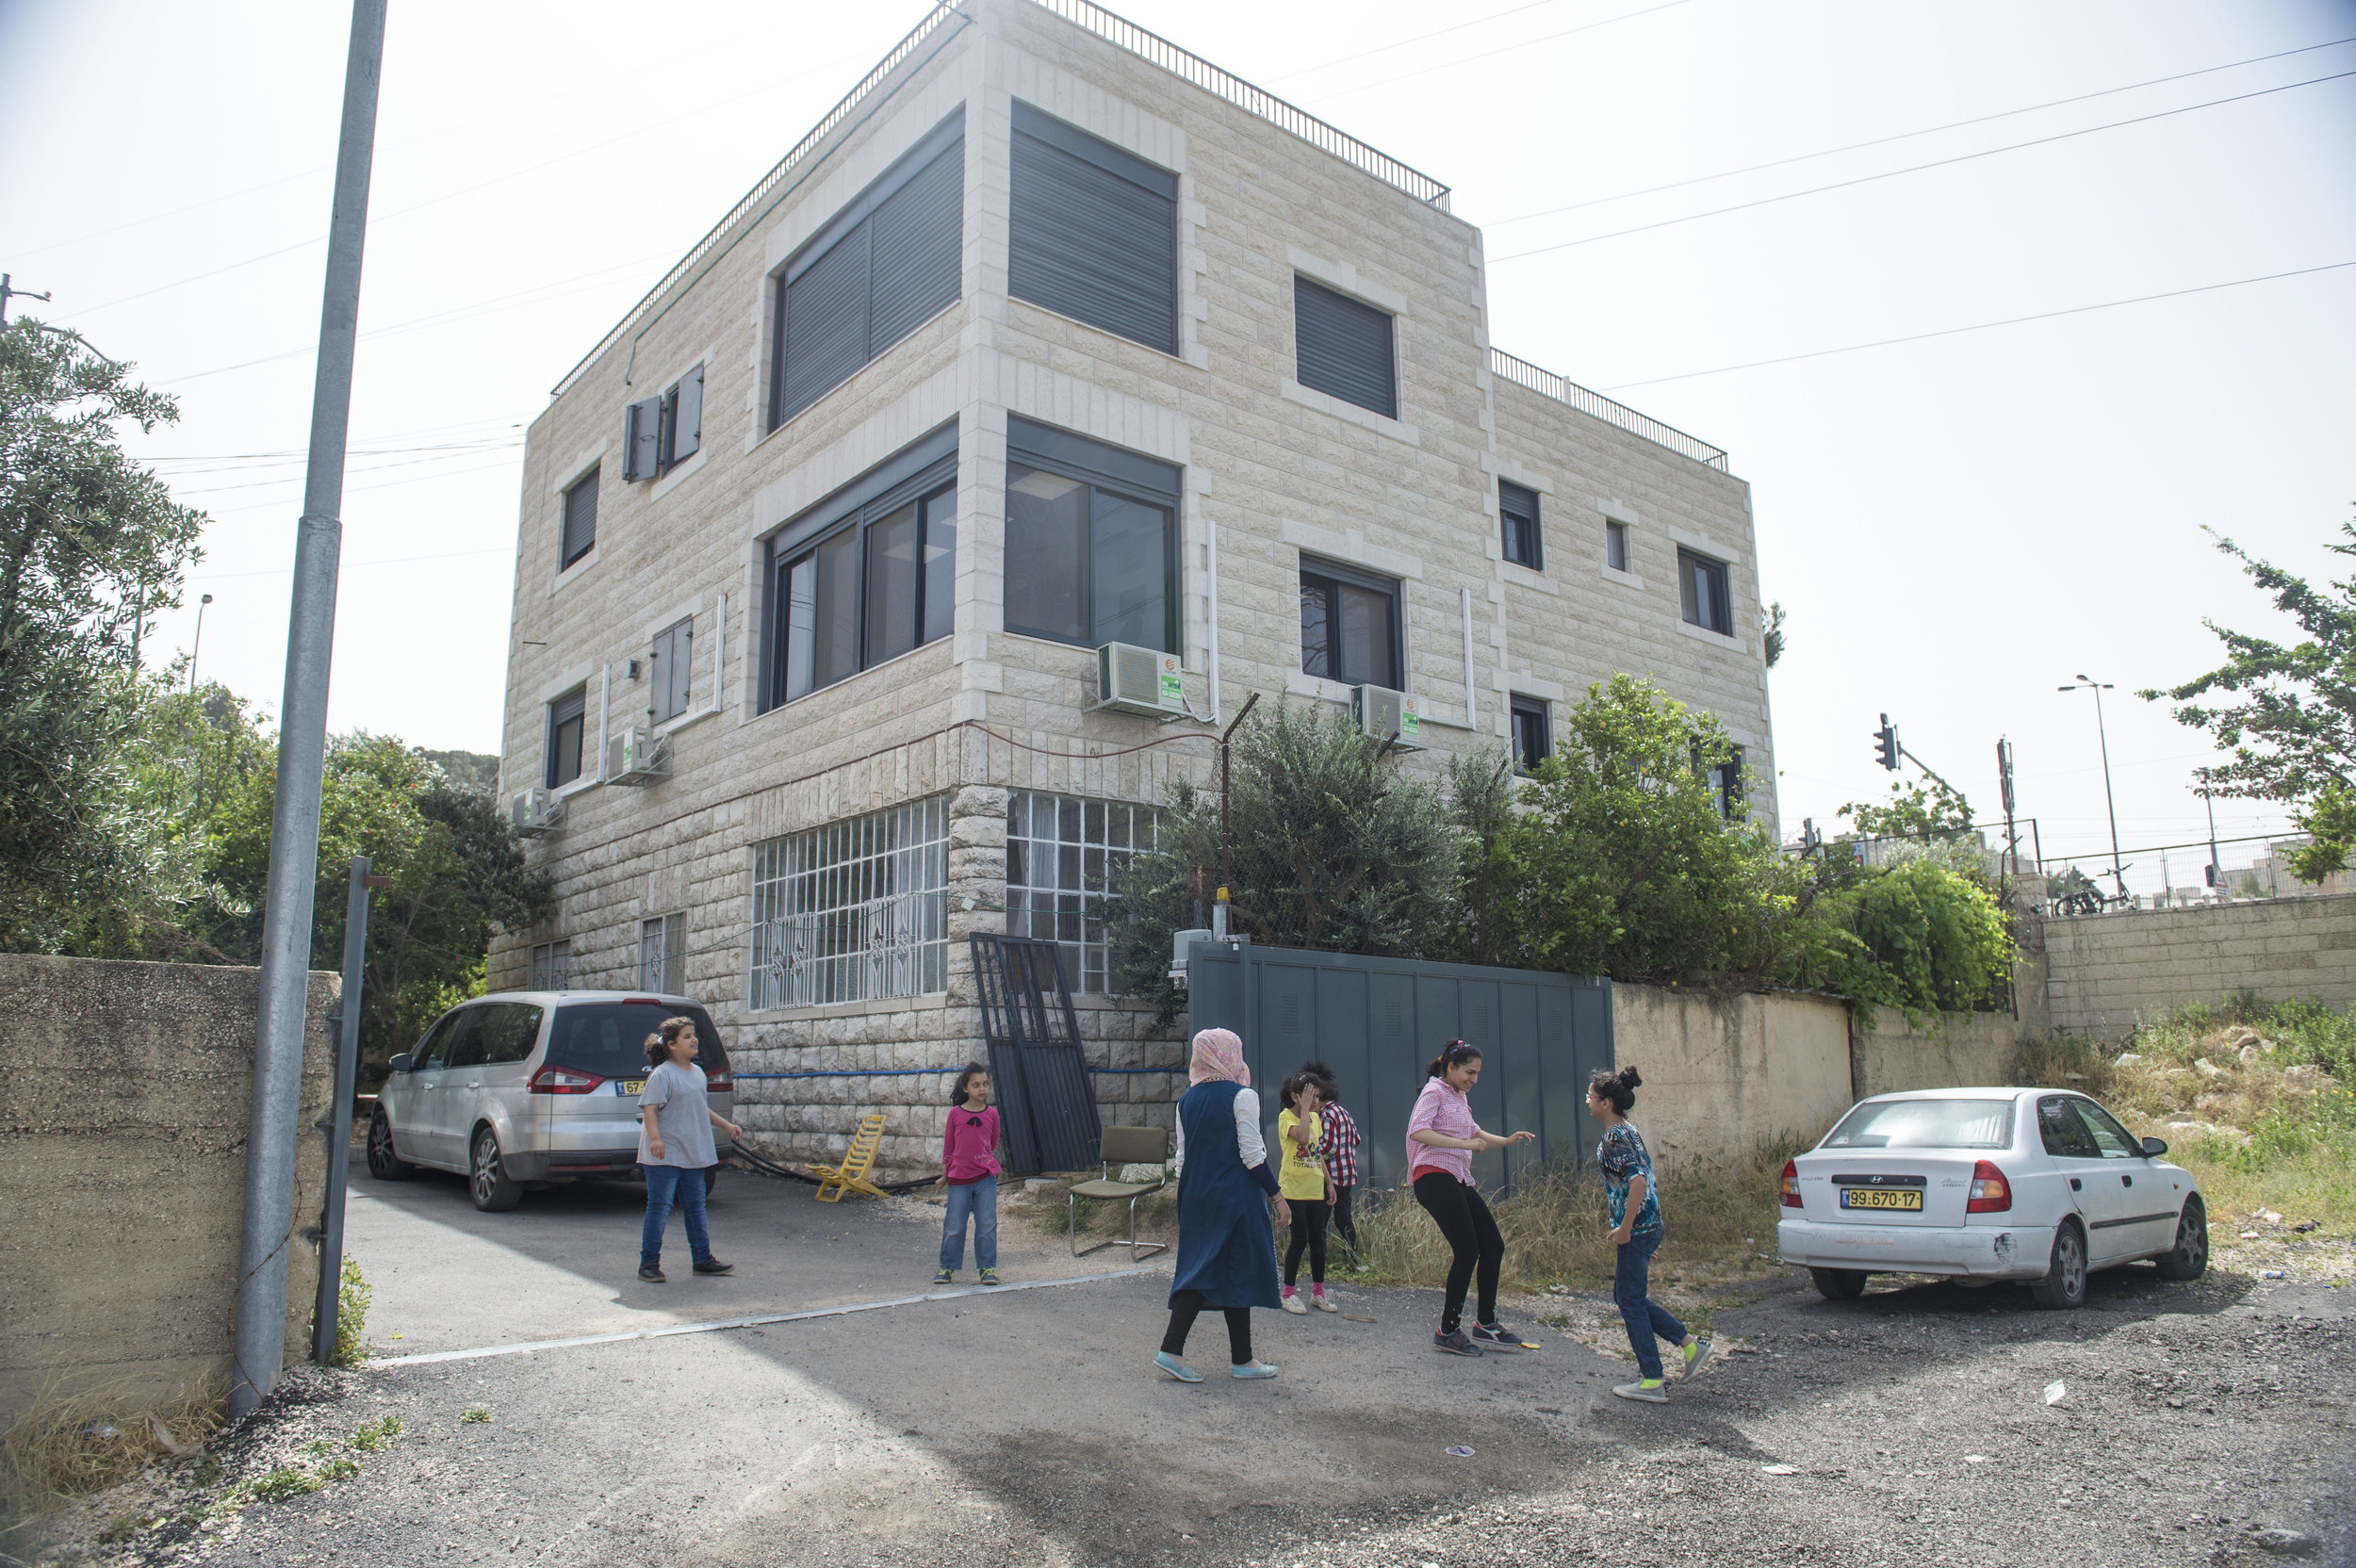 Students of the Peace Center for the Blind play outside of the school after preparation for their final exams. The school is located in the Shu'afat neighborhood of East Jerusalem and has served blind women for nearly 36 years as an education center and as a vocational school for those who wish to continue learning after they graduate.